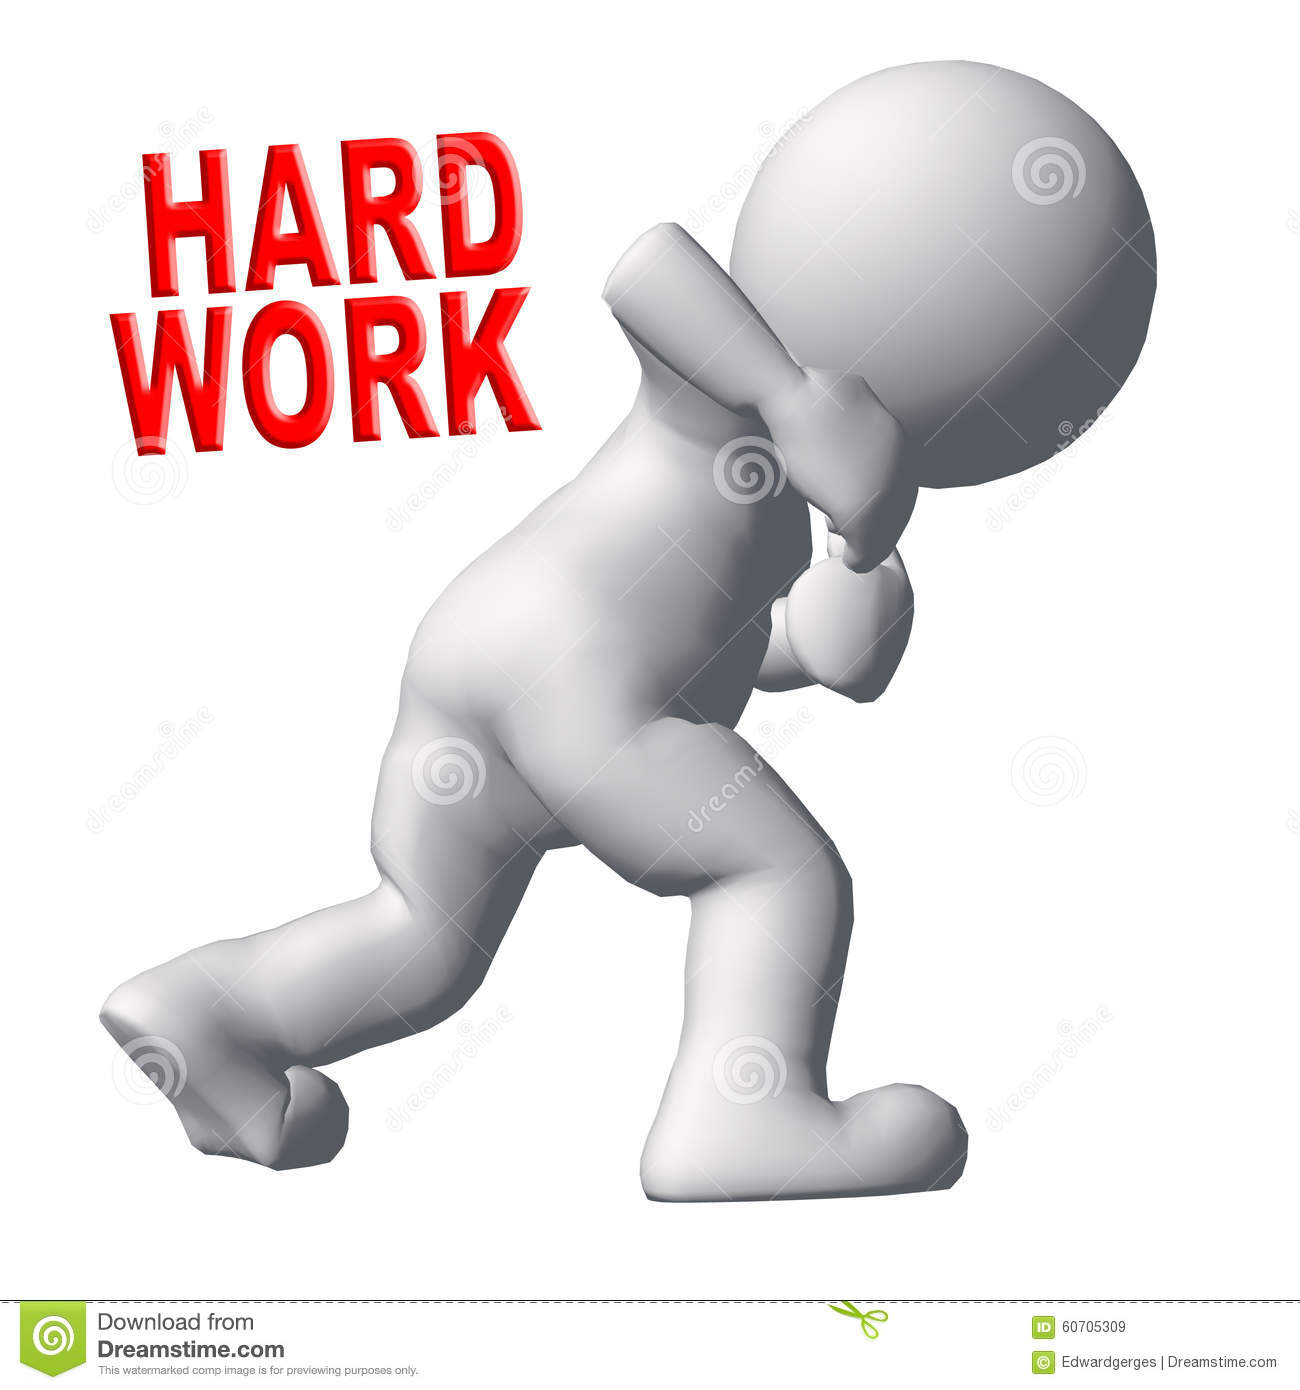 hight resolution of hard work stock illustrations 24 359 hard work stock illustrations vectors clipart dreamstime